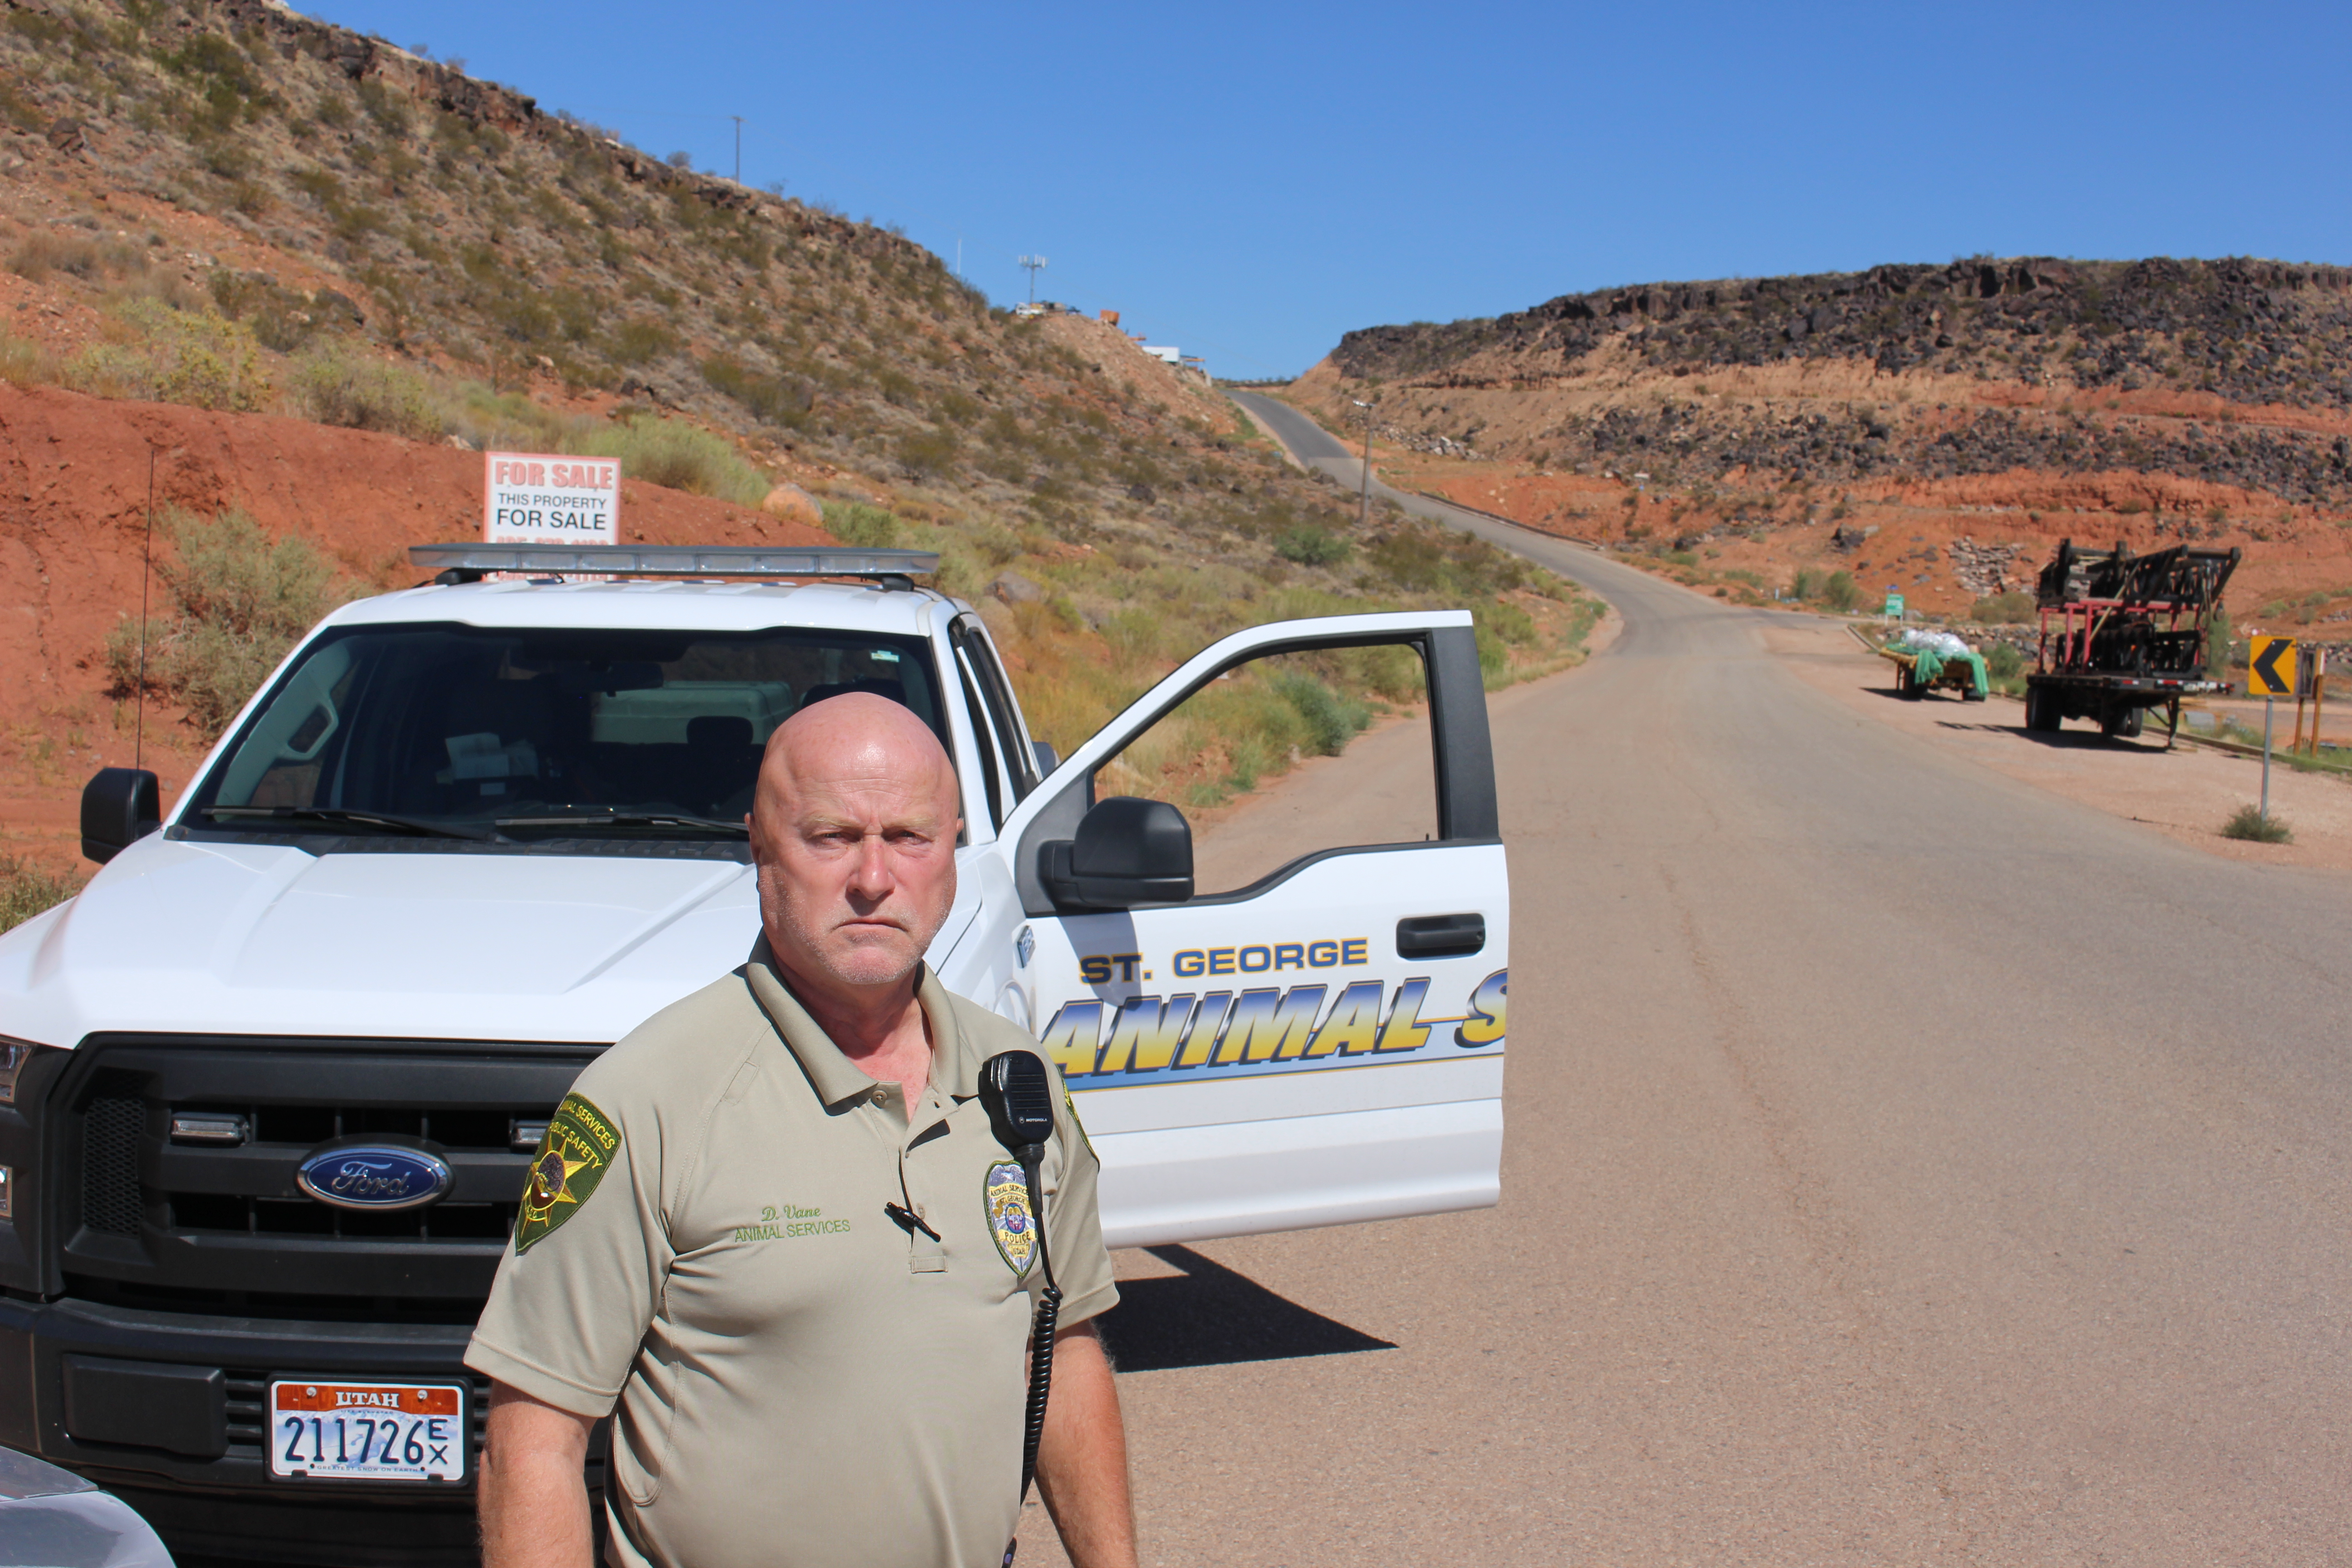 St. George Animal Control officer David Vane after capturing a porcupine and releasing it back into the wild out Turkey Farm Road. St. George, Utah, Sept. 4, 2016 | Photo by Ric Wayman, St. George News